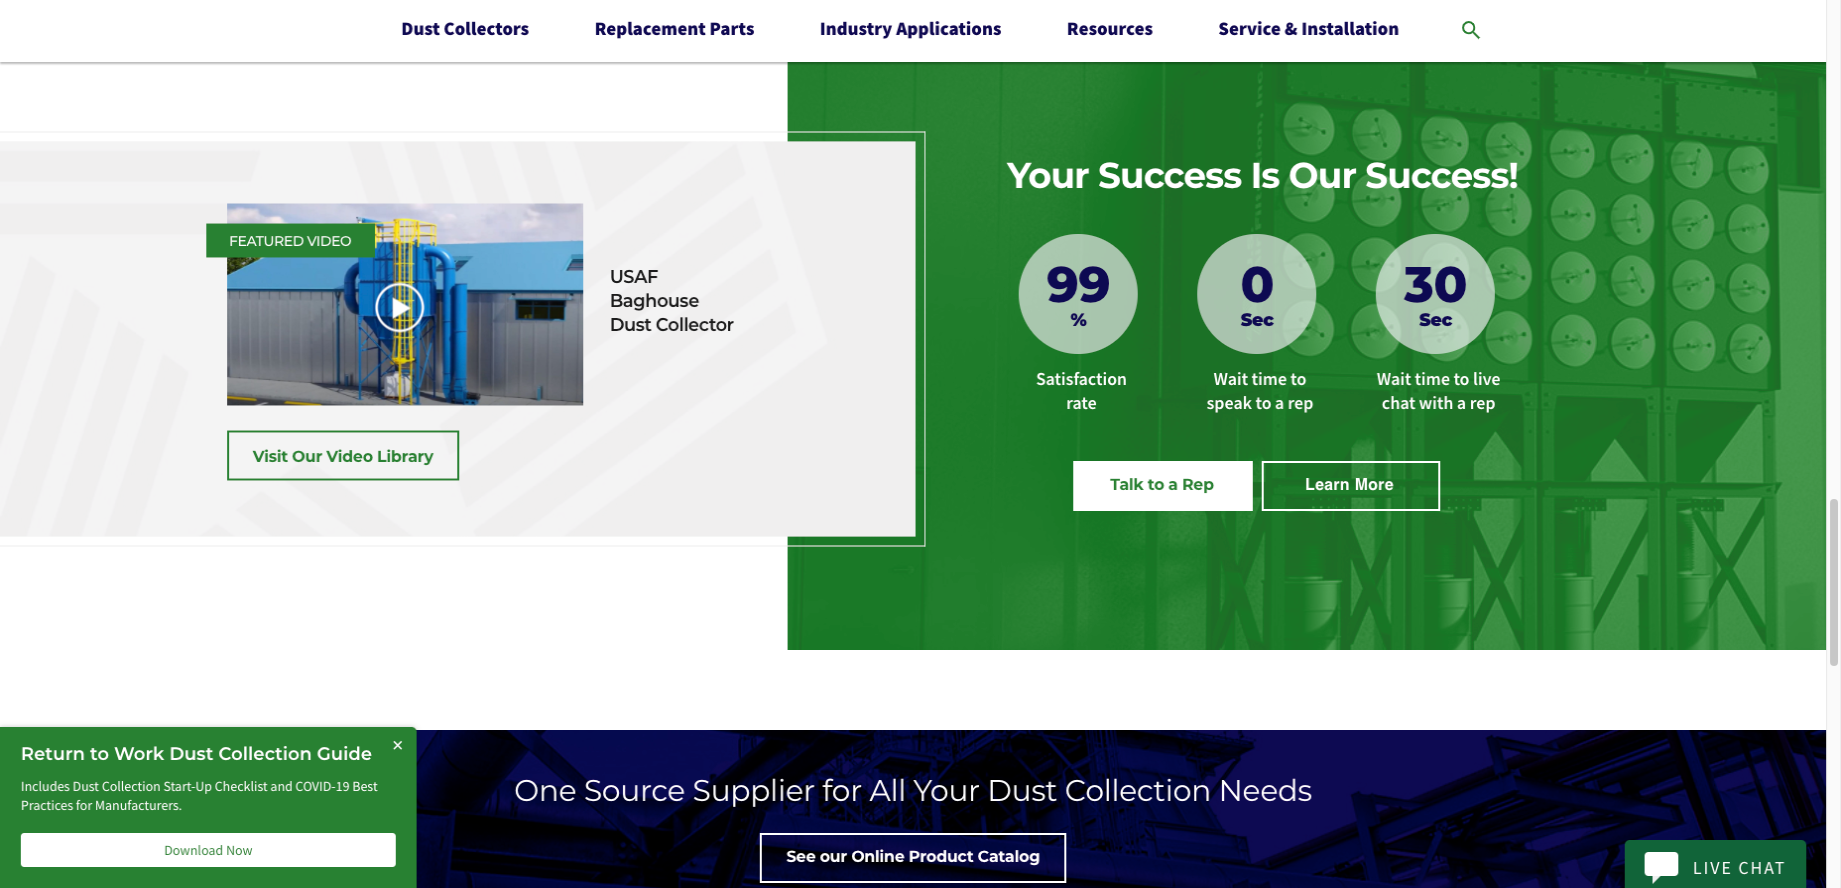 U.S. Air Filtration - Distributor Website Example - Customer Success